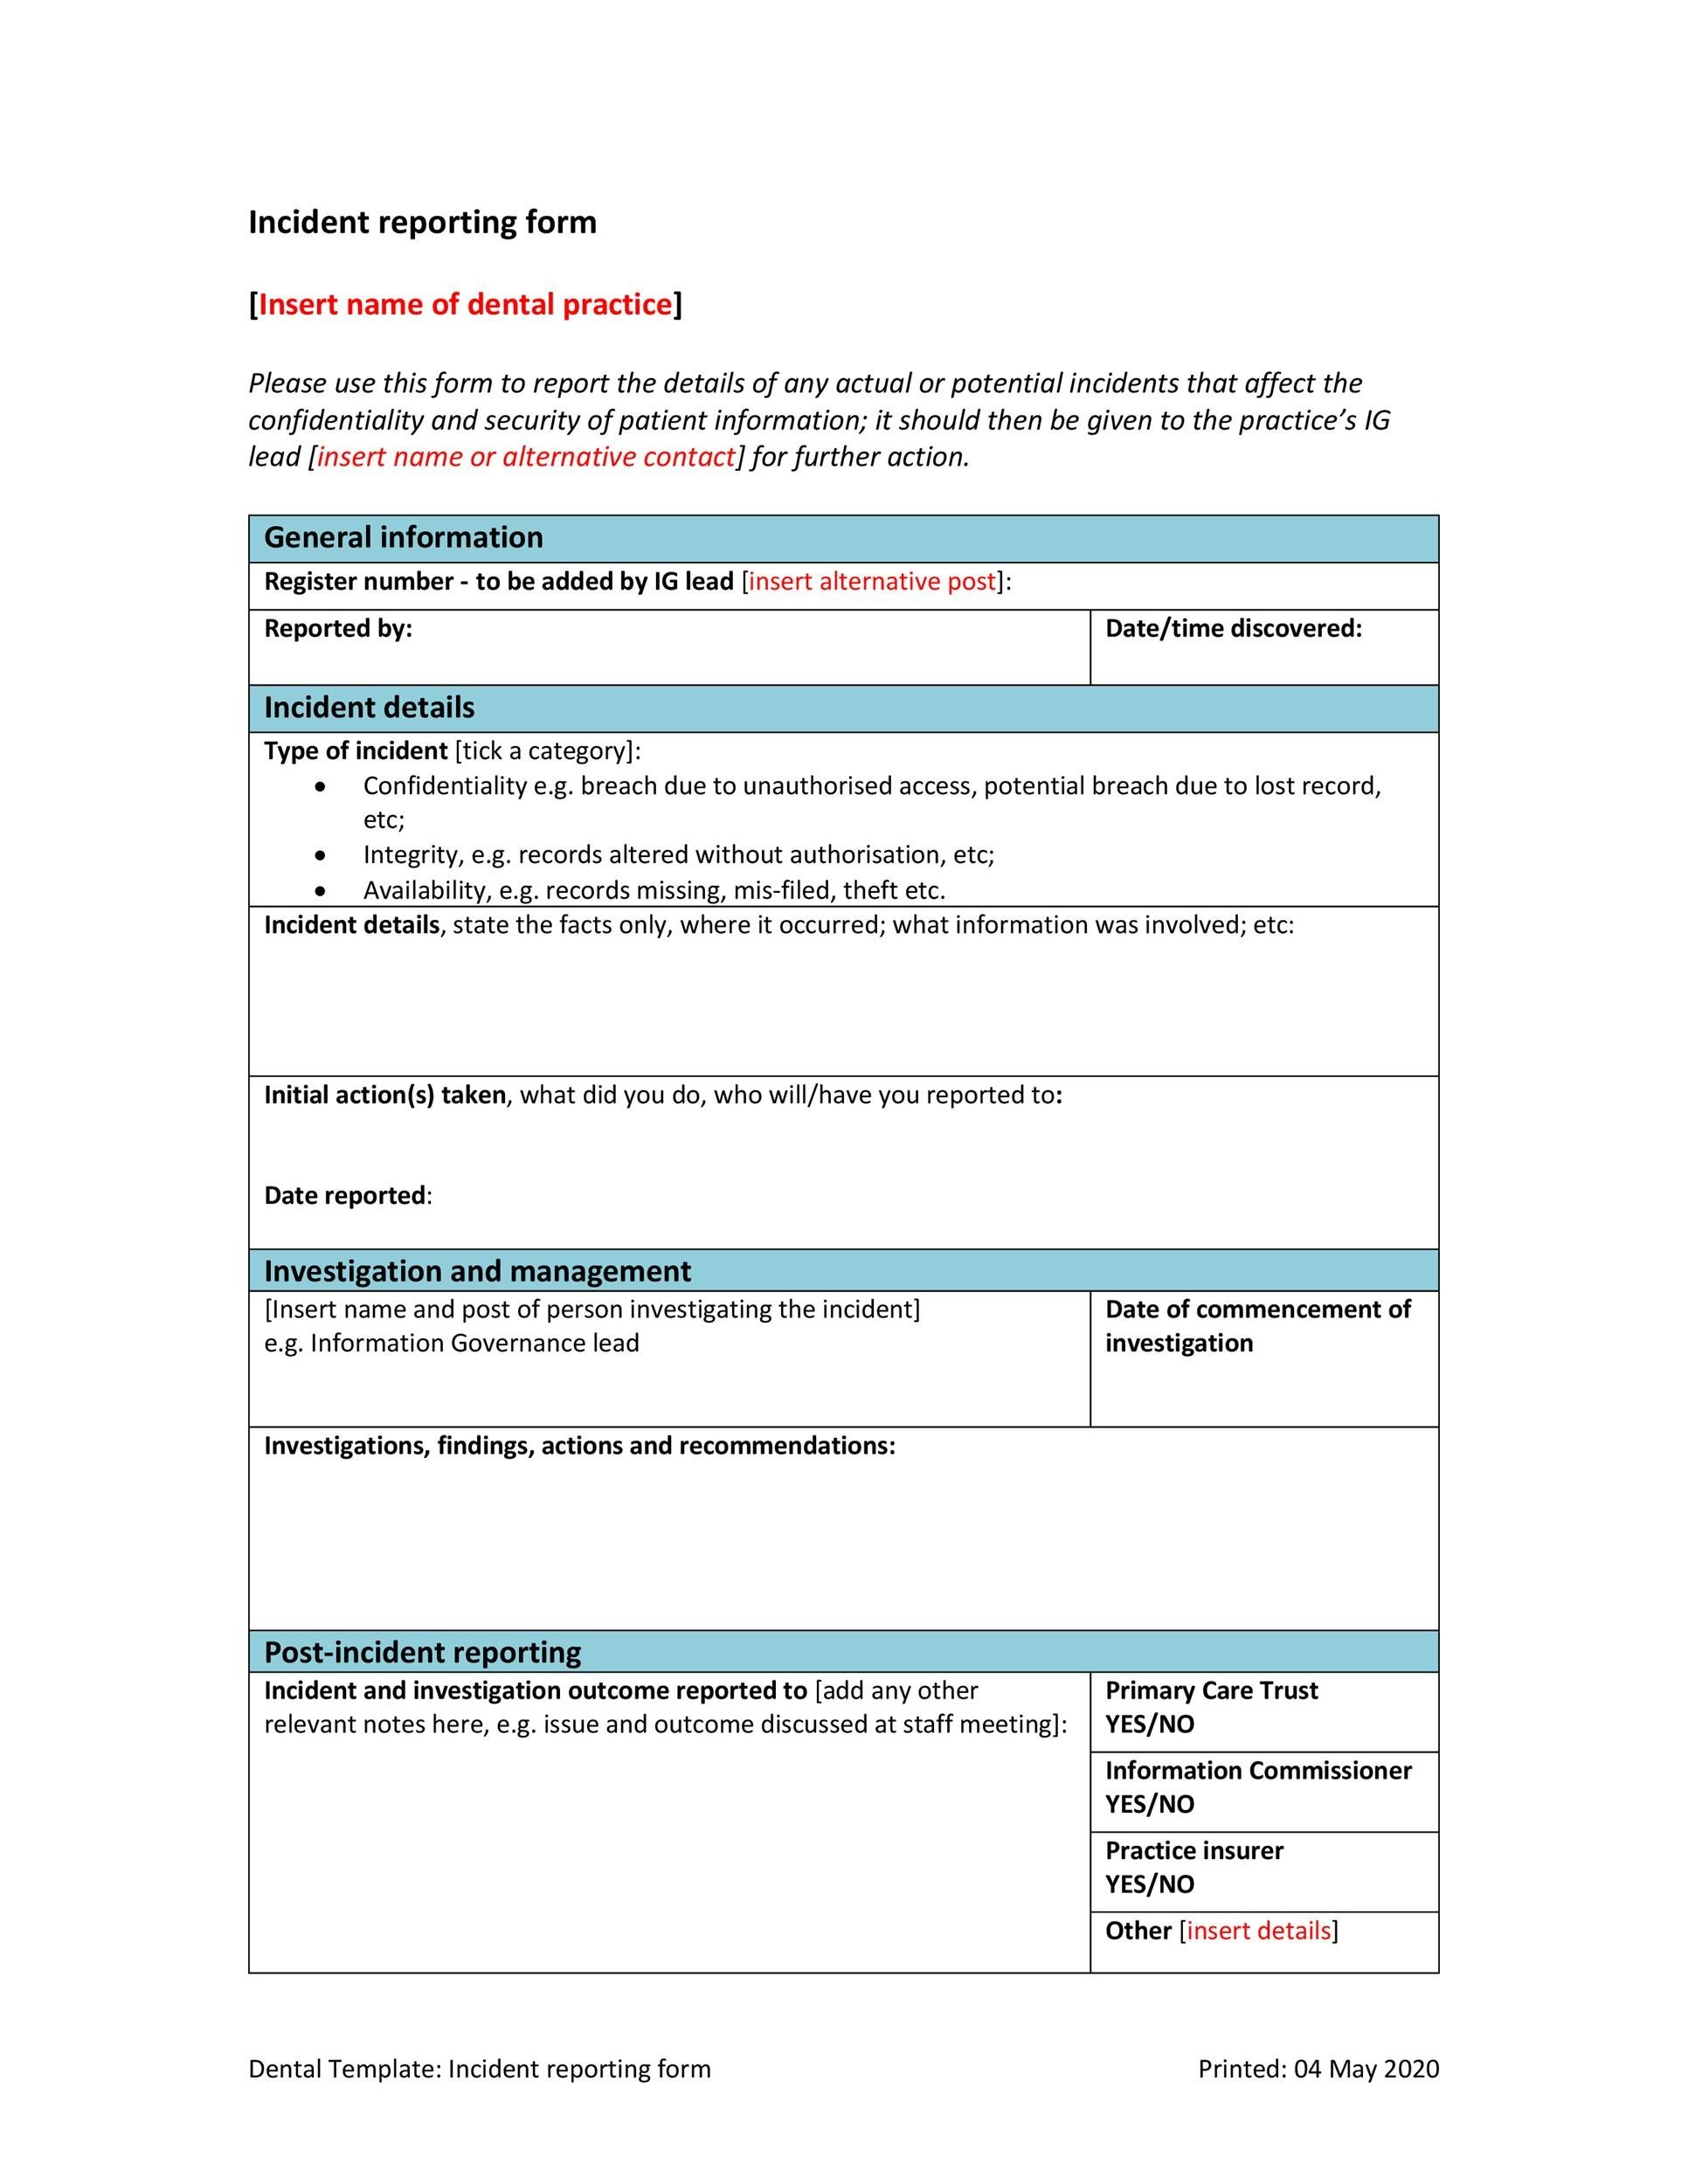 60+ Incident Report Template Employee, Police, Generic - Template Lab - incident reporting template